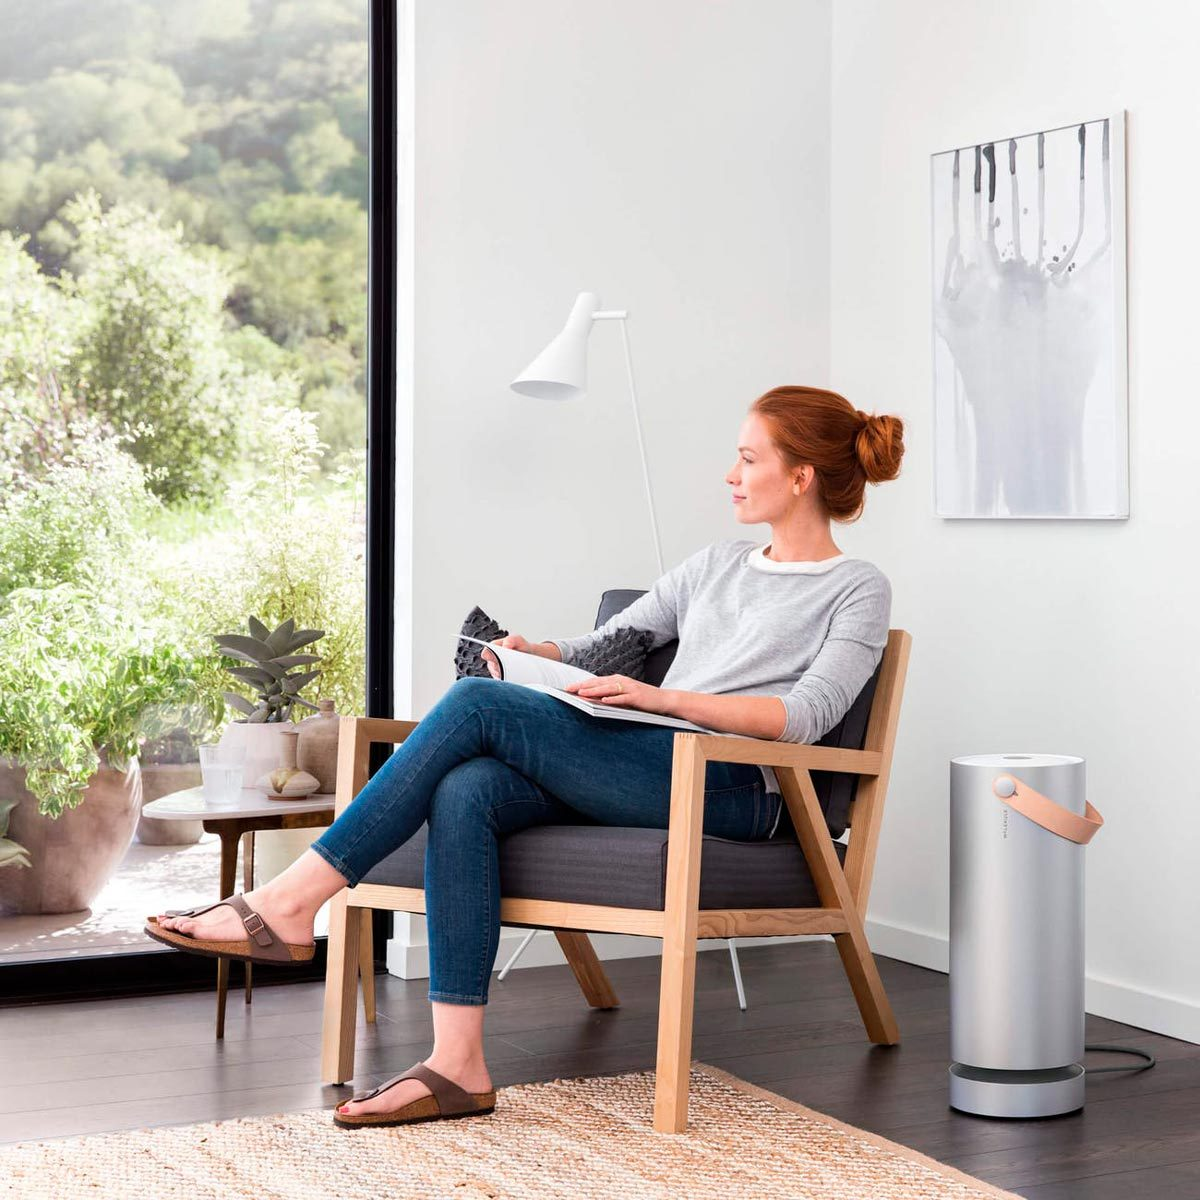 Molekule Air Purifier